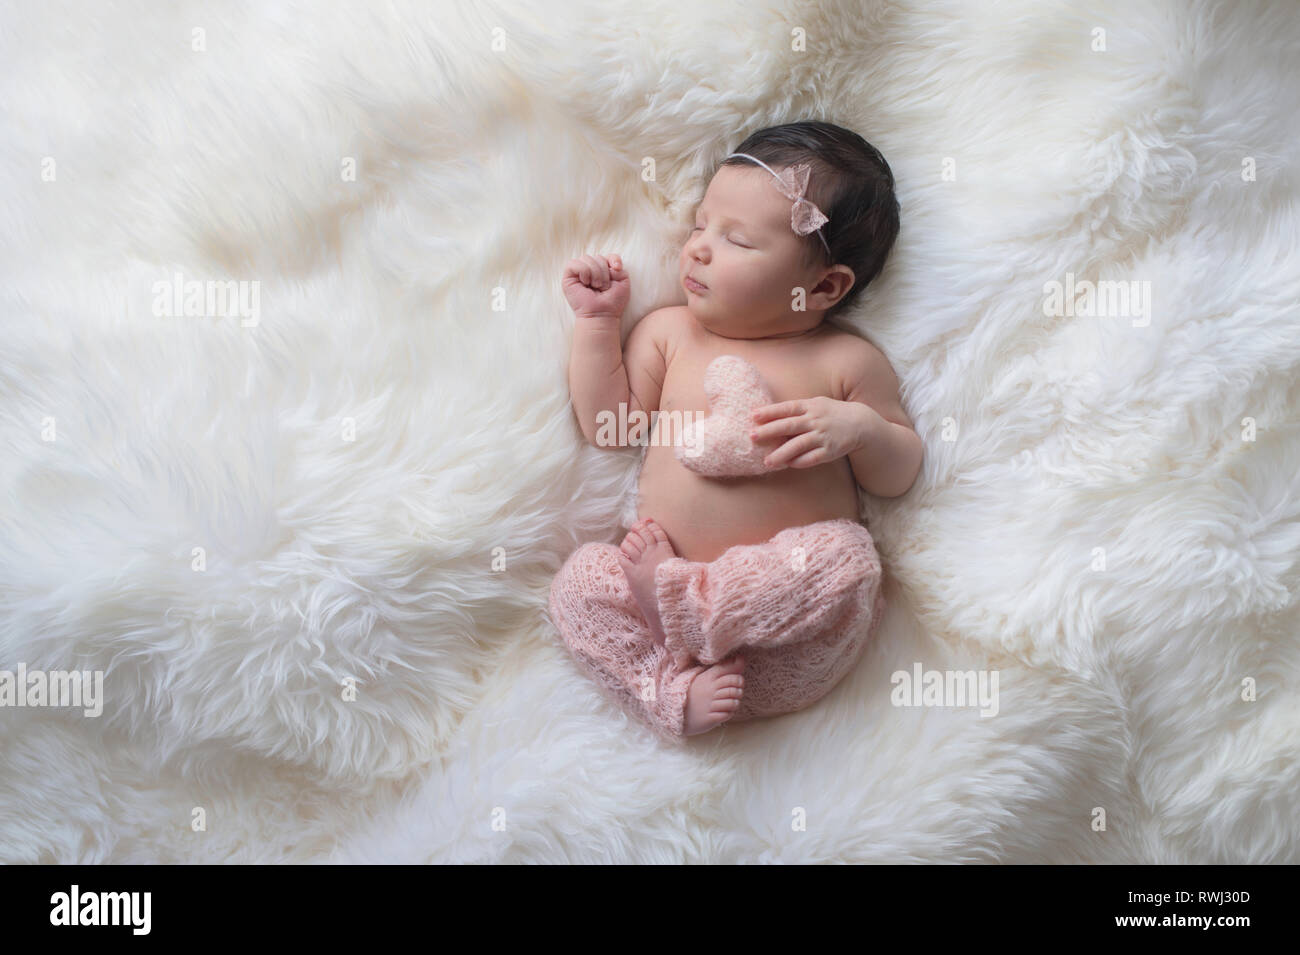 Sleeping week old newborn baby girl wearing light pink knitted pants and holding a tiny heart shaped pillow shot in the studio on a white sheepski